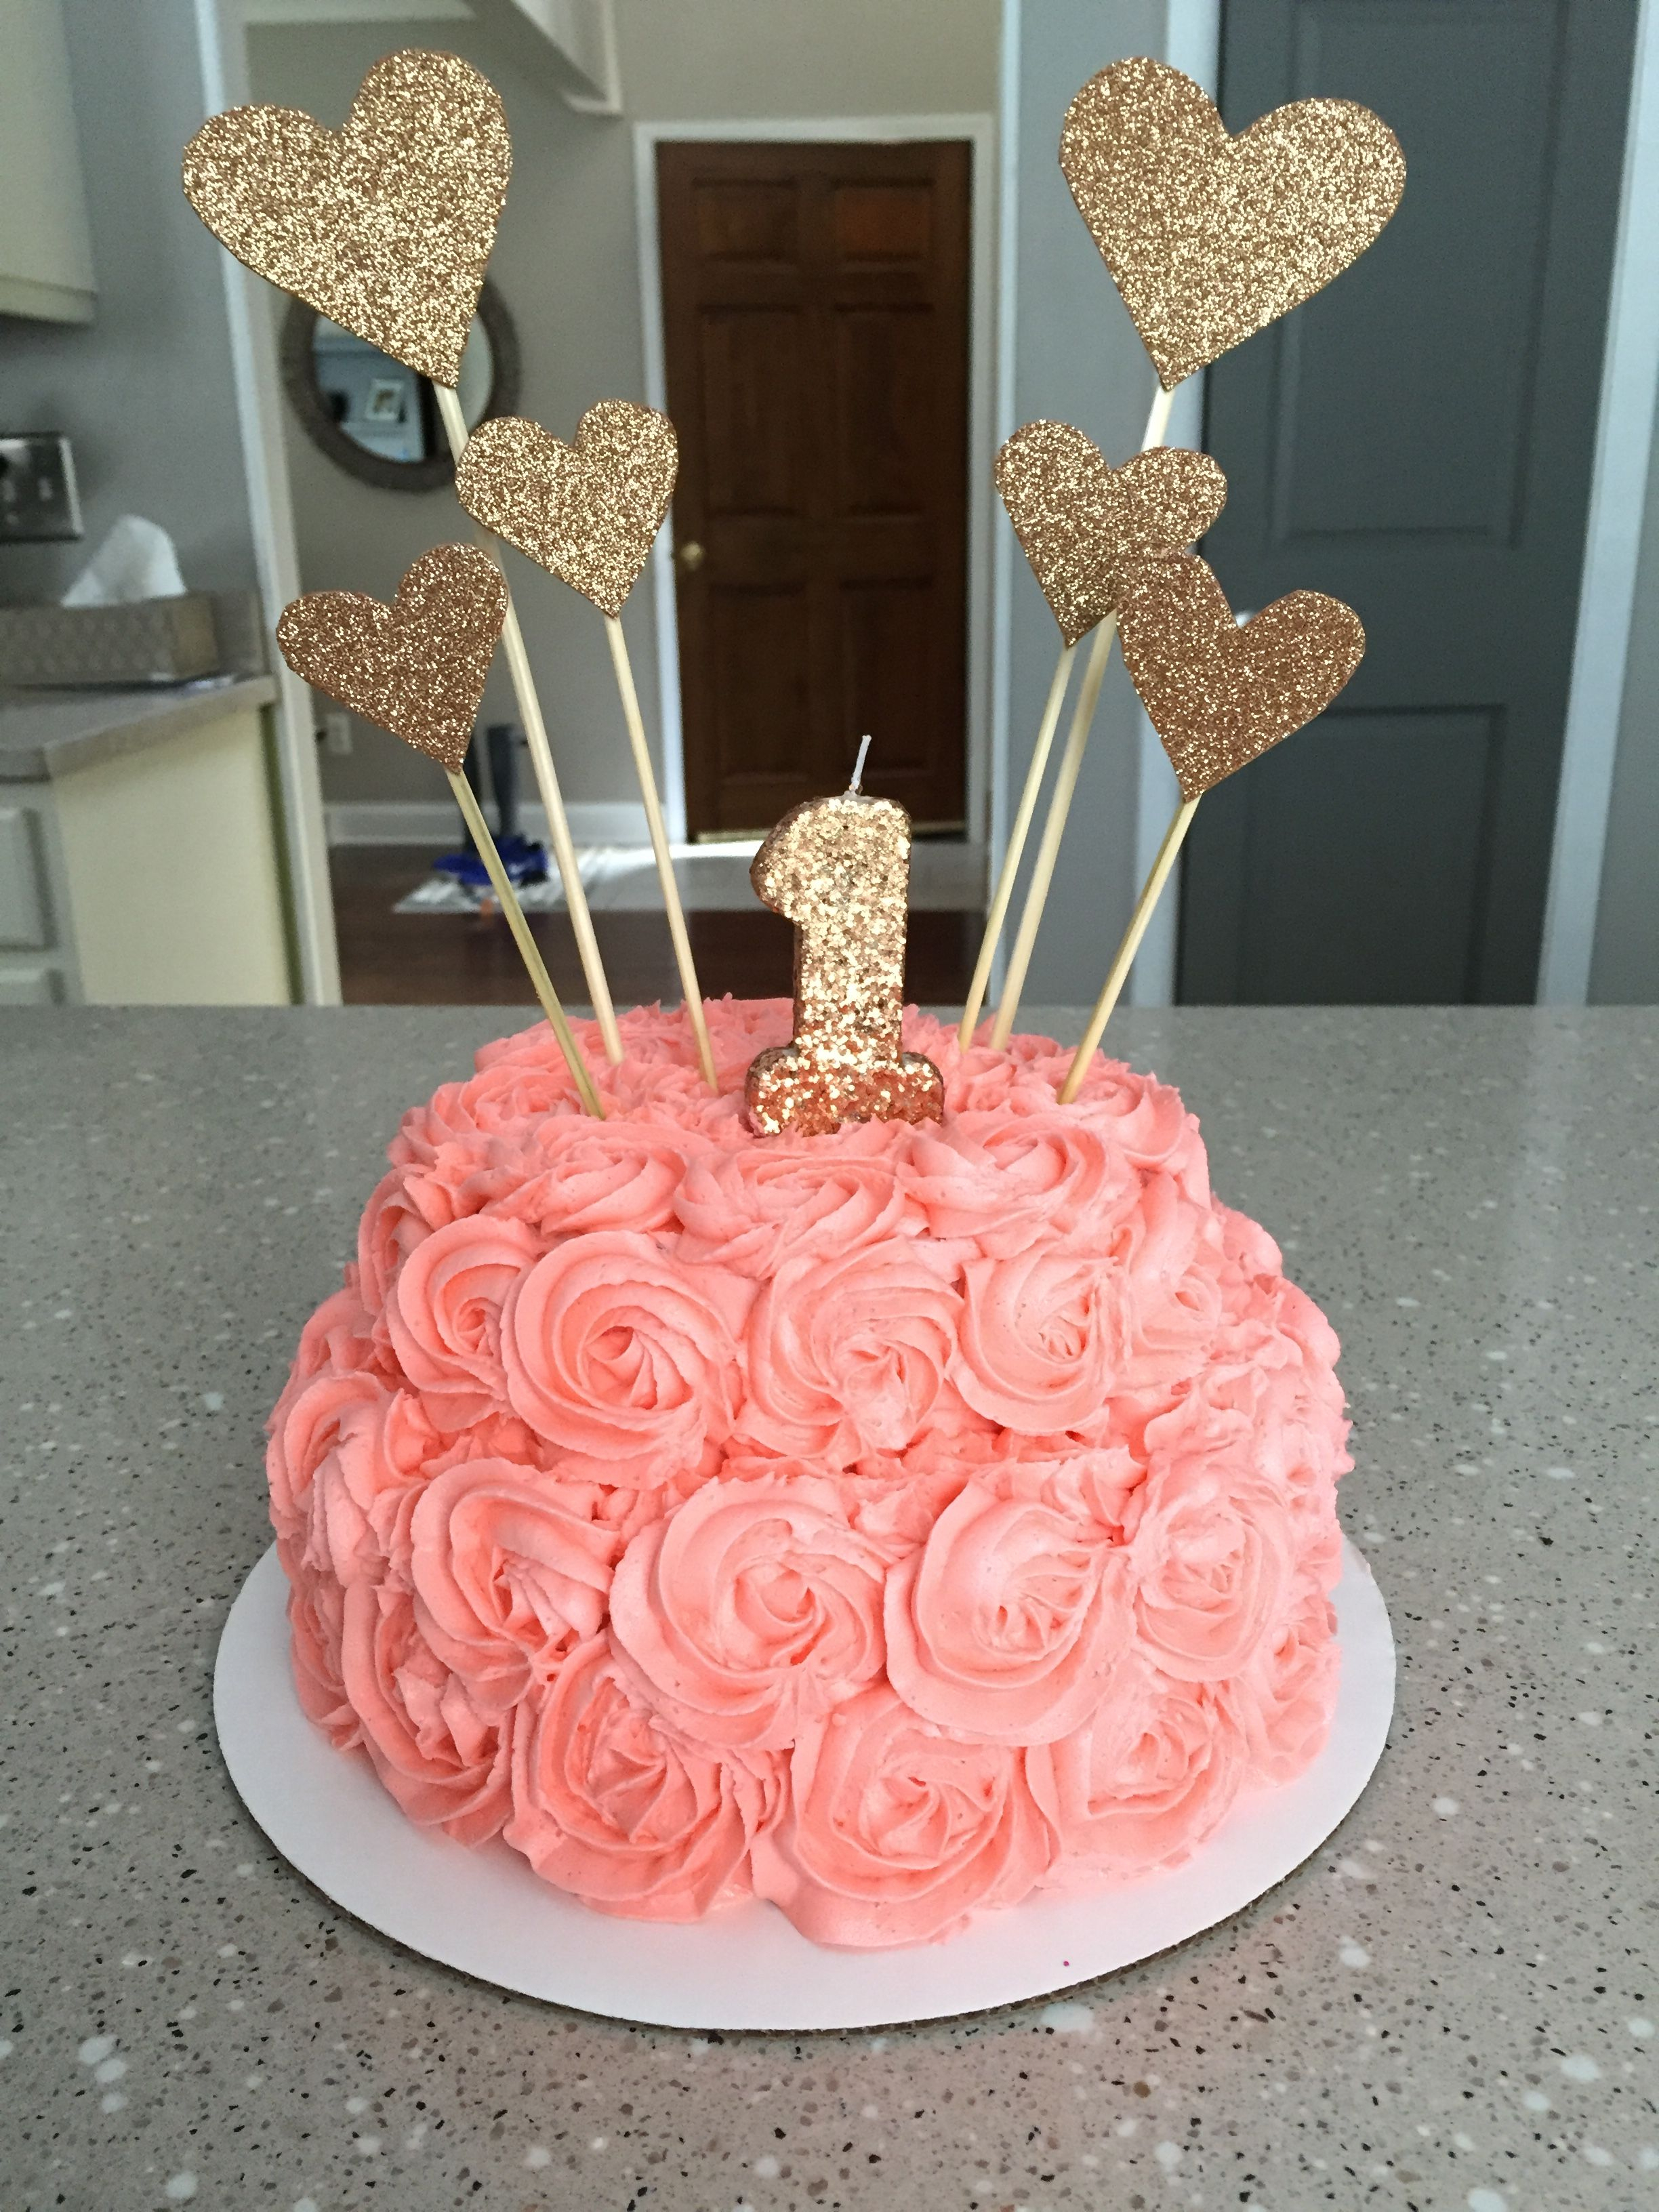 Birthday Cake For 1 Year Old First Birthday Cake Pink And Gold Decorations On A 1 Year Olds